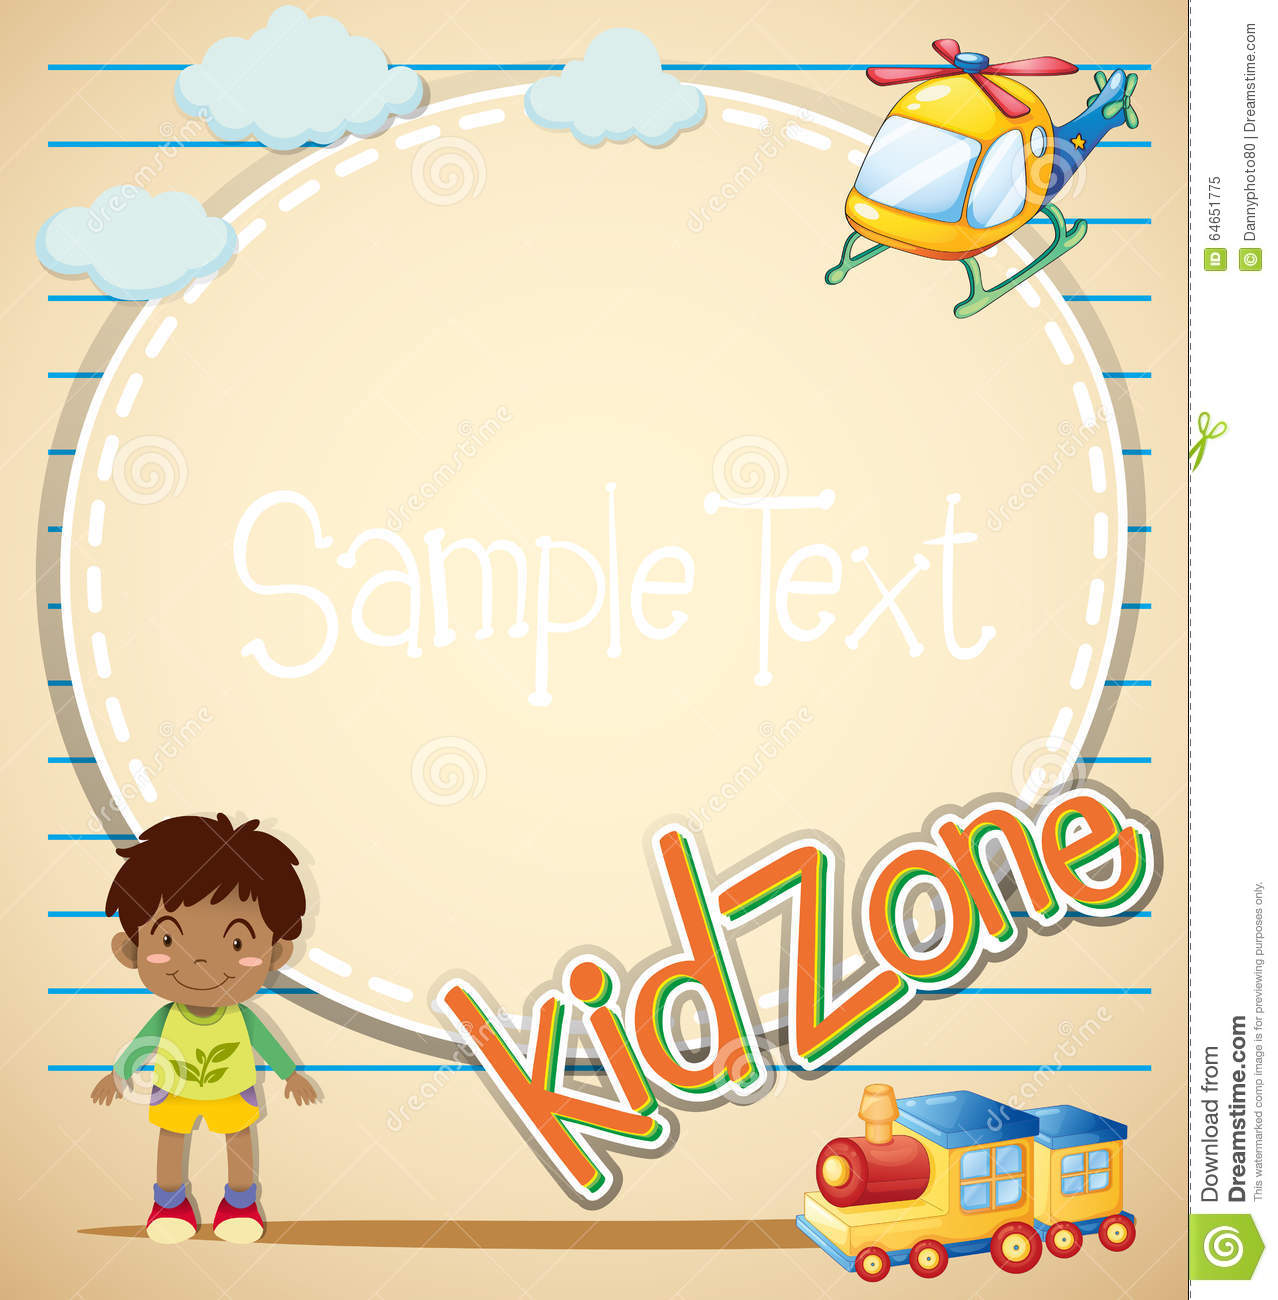 Little Boys Toys Border : Border design with boy and toys stock vector image